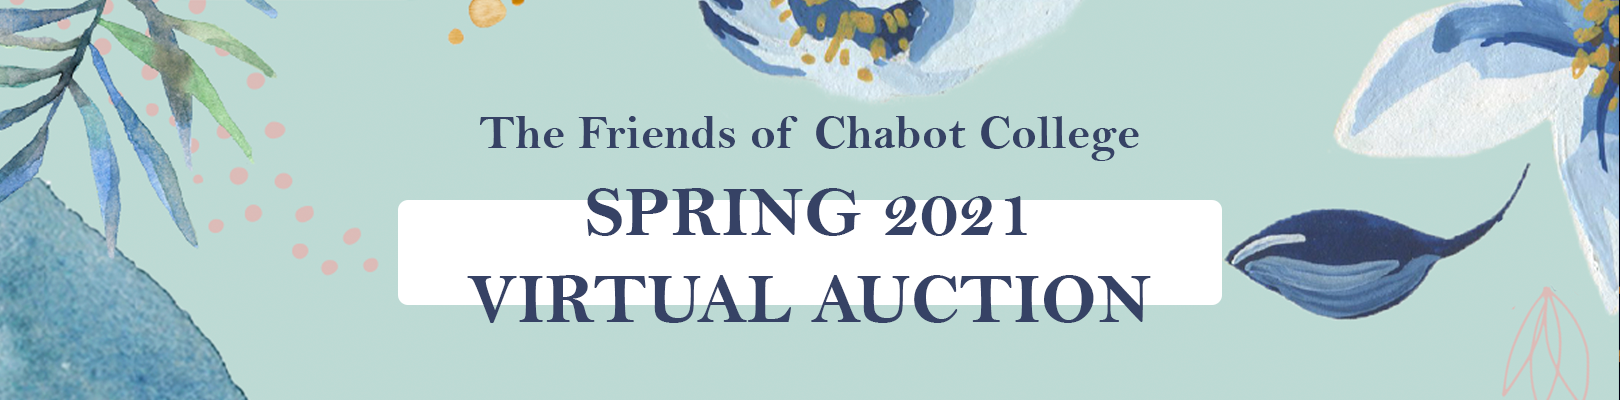 Spring 2021 Virtual Auction